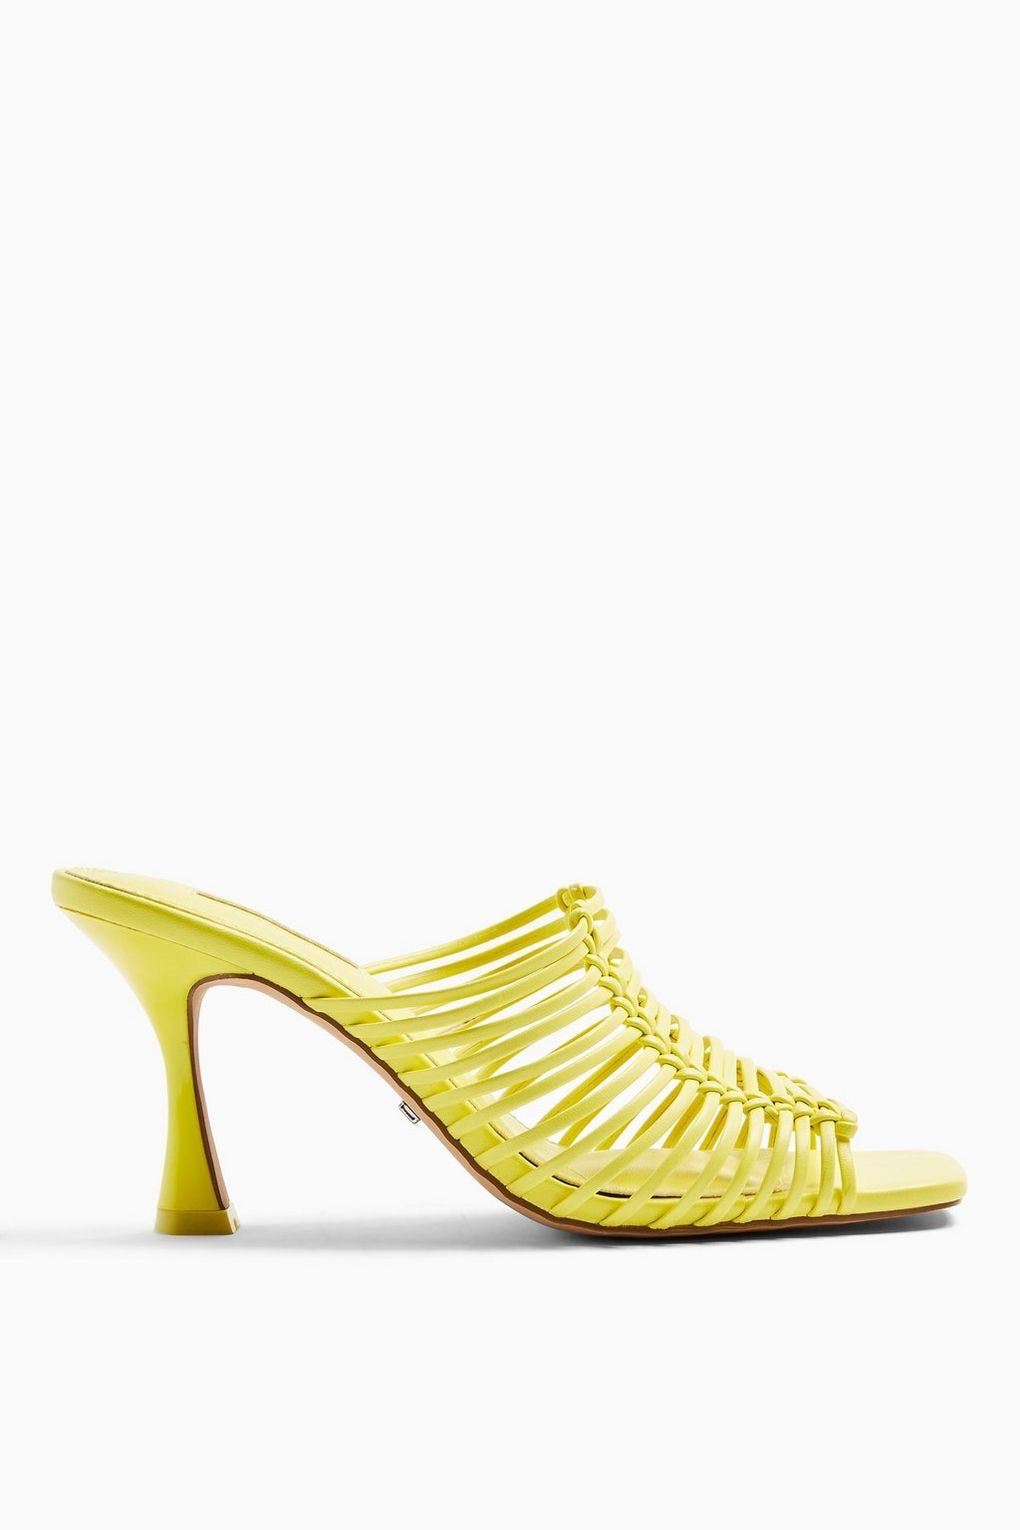 TOPSHOP NOON YELLOW MACRAME MULES